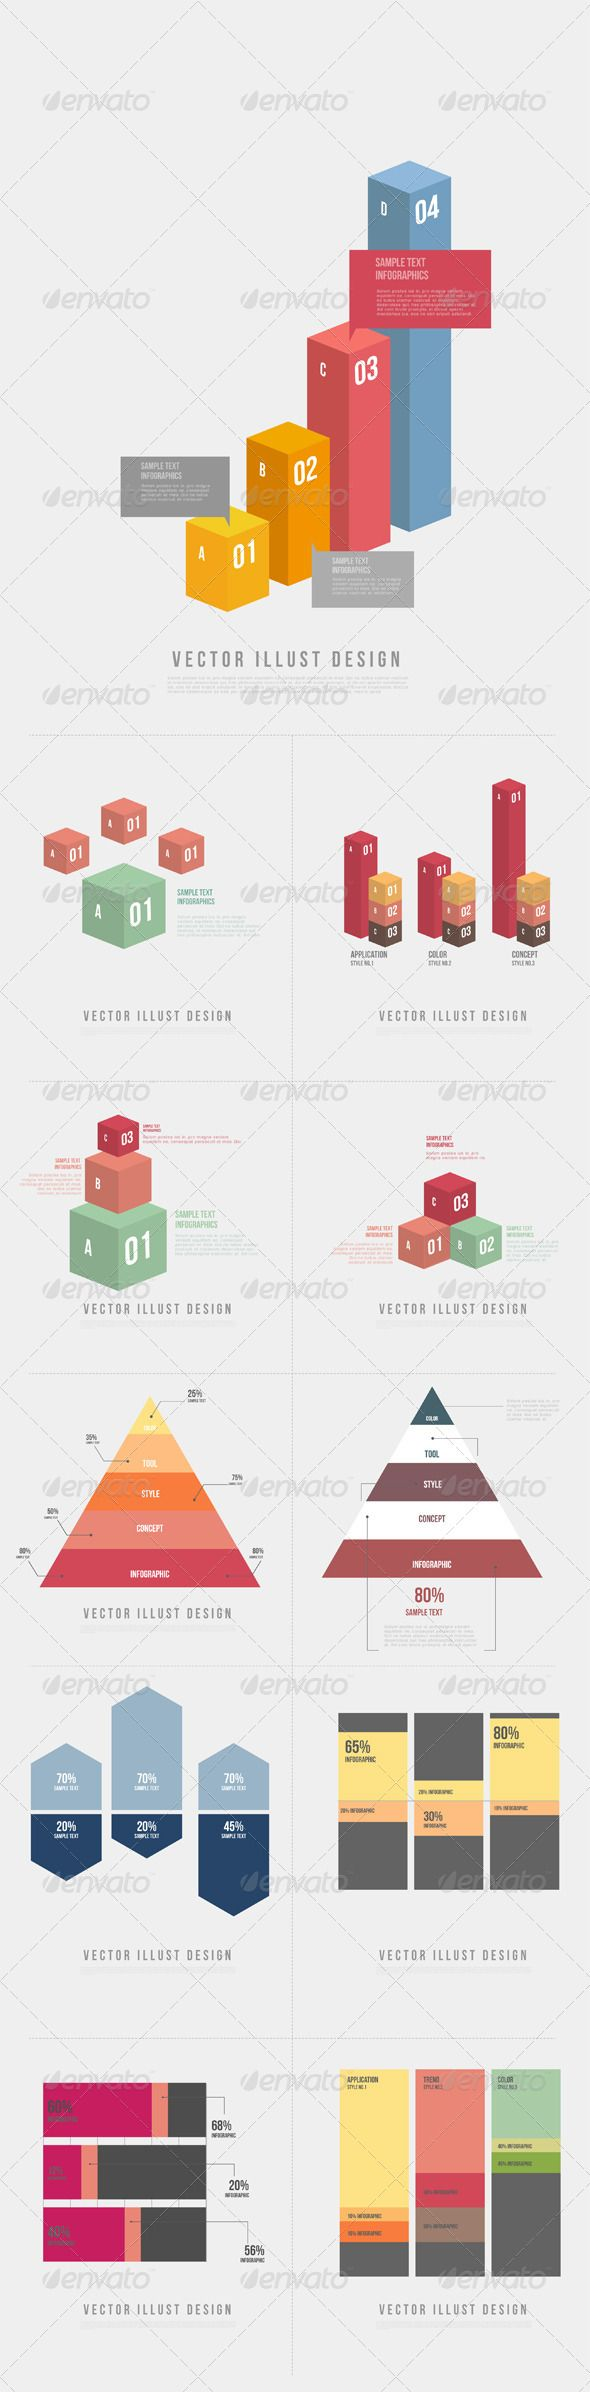 Infographics Template #design #infografik Download: http://graphicriver.net/item/infographics-graph-012/6933397?ref=ksioks